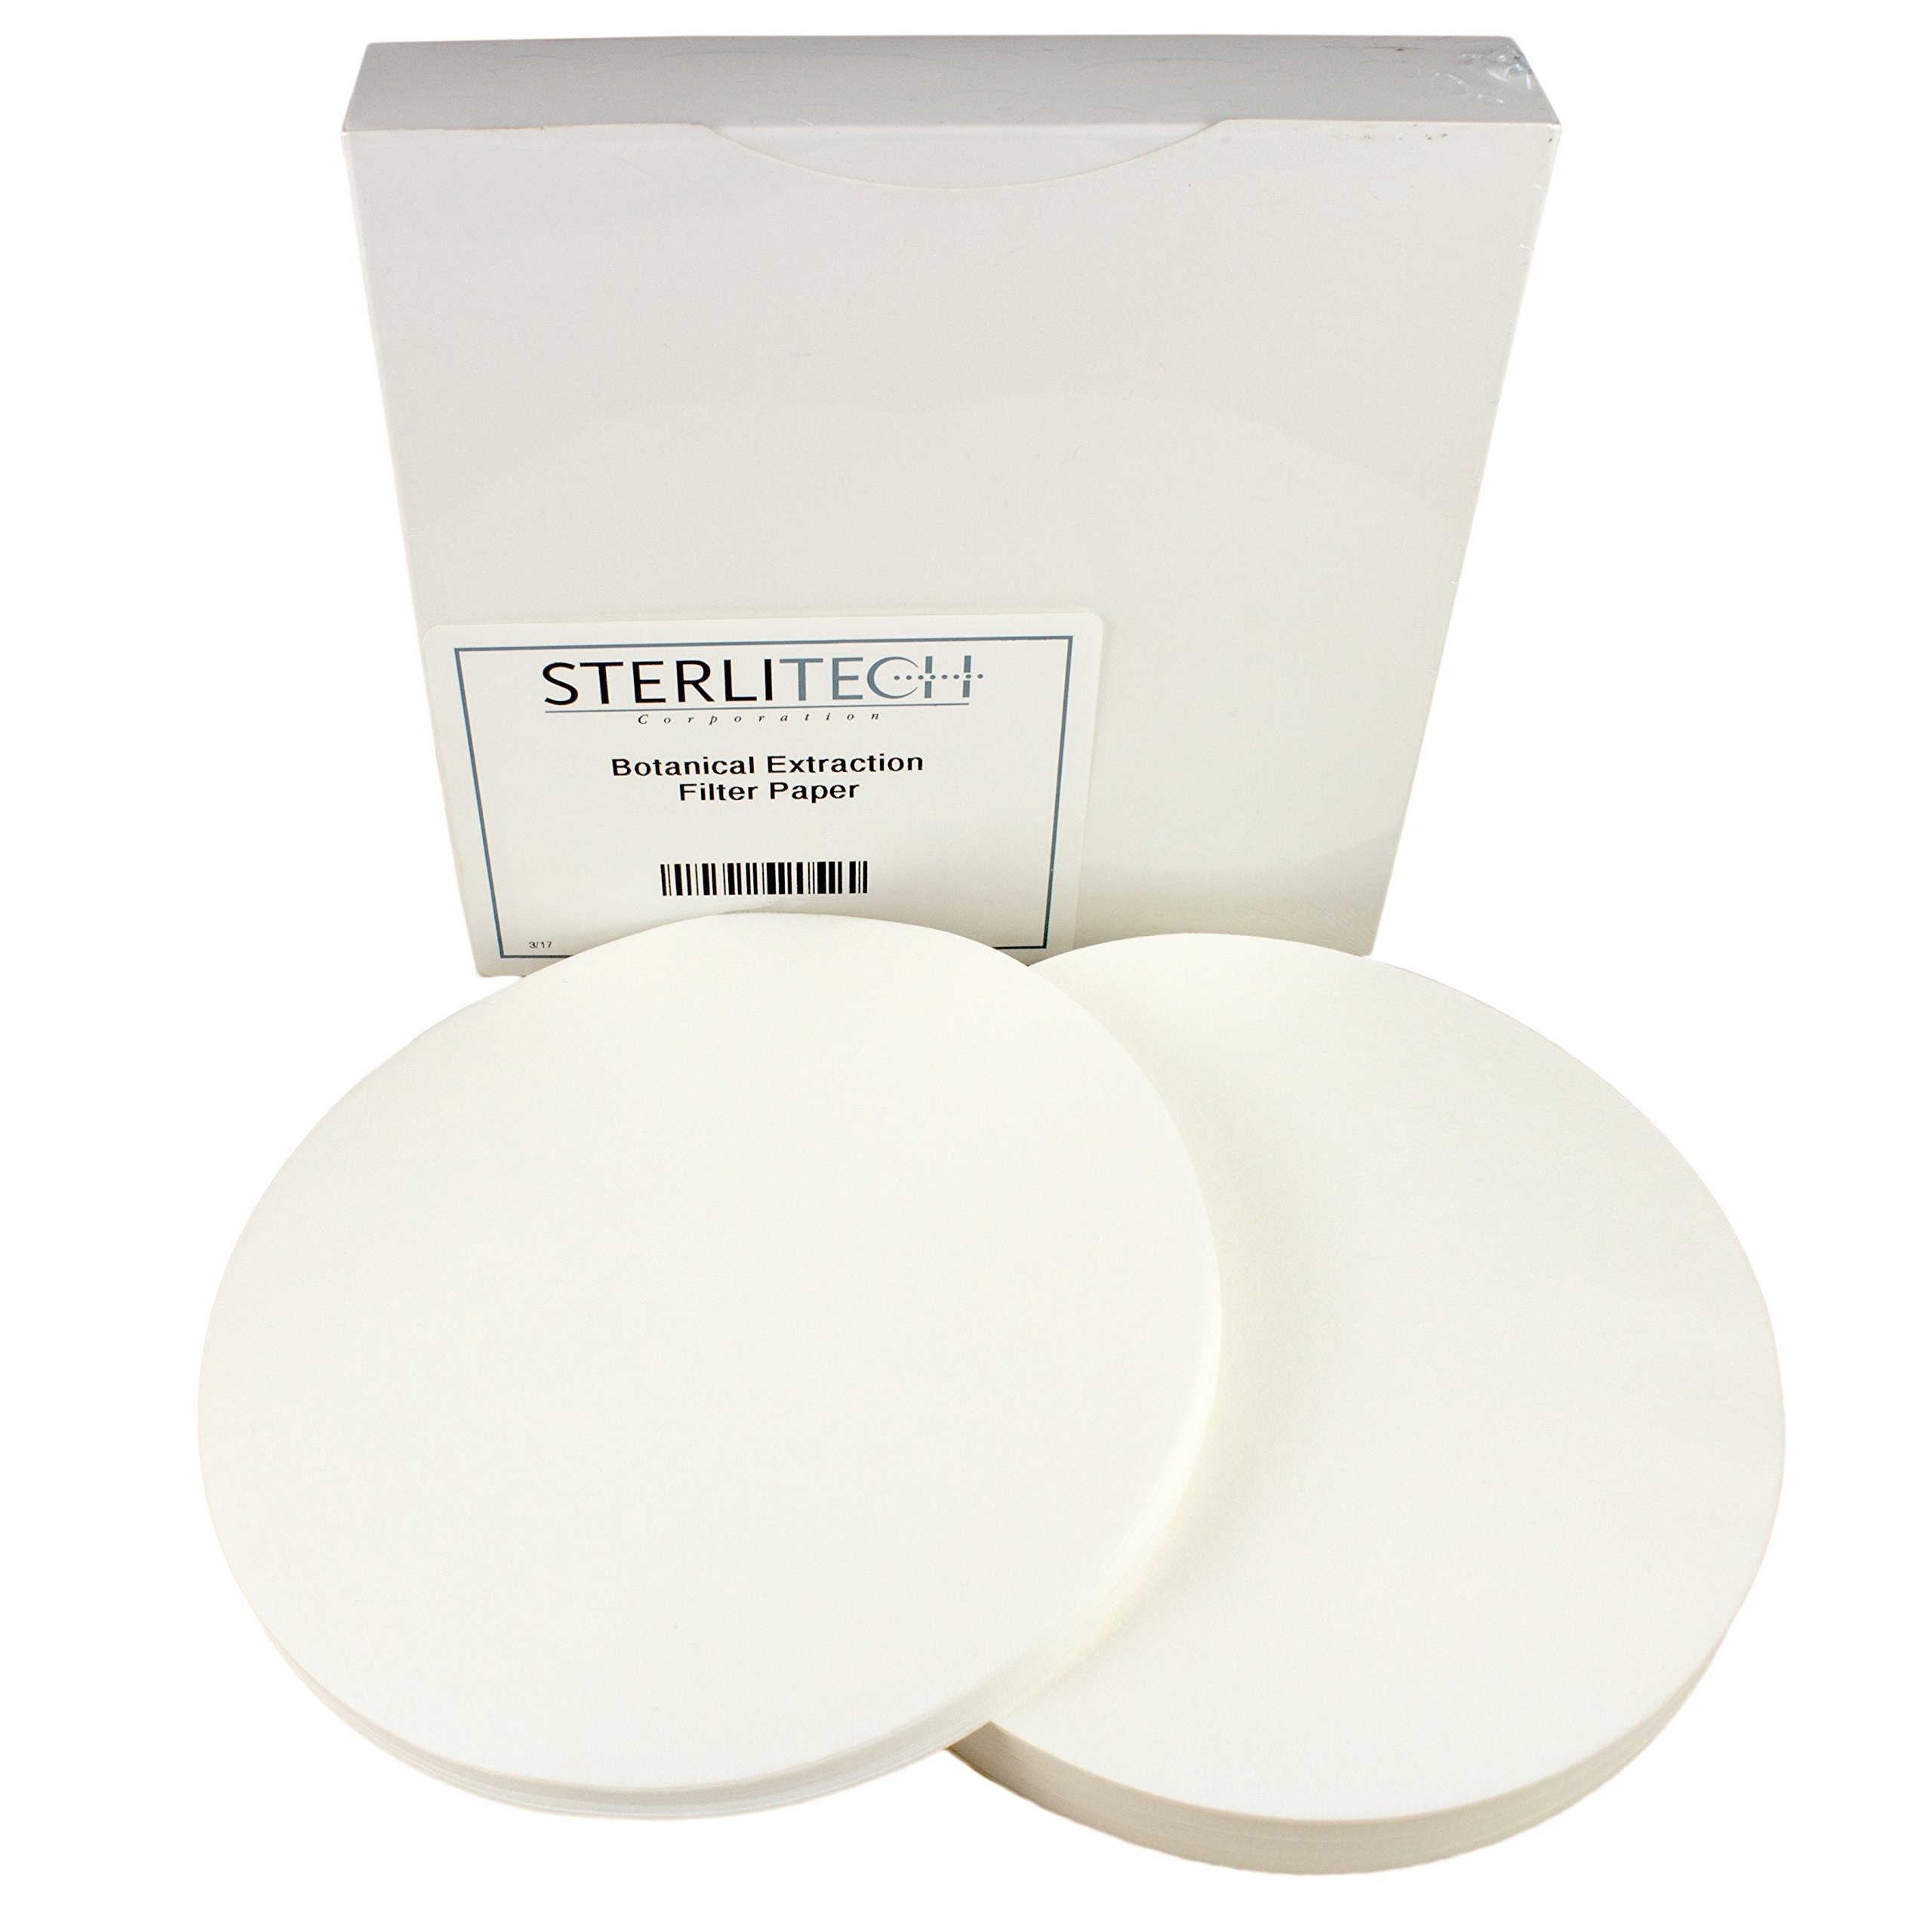 Botanical Extraction Medium Cellulose Filter Paper, 24cm, 100/Pk by Sterlitech